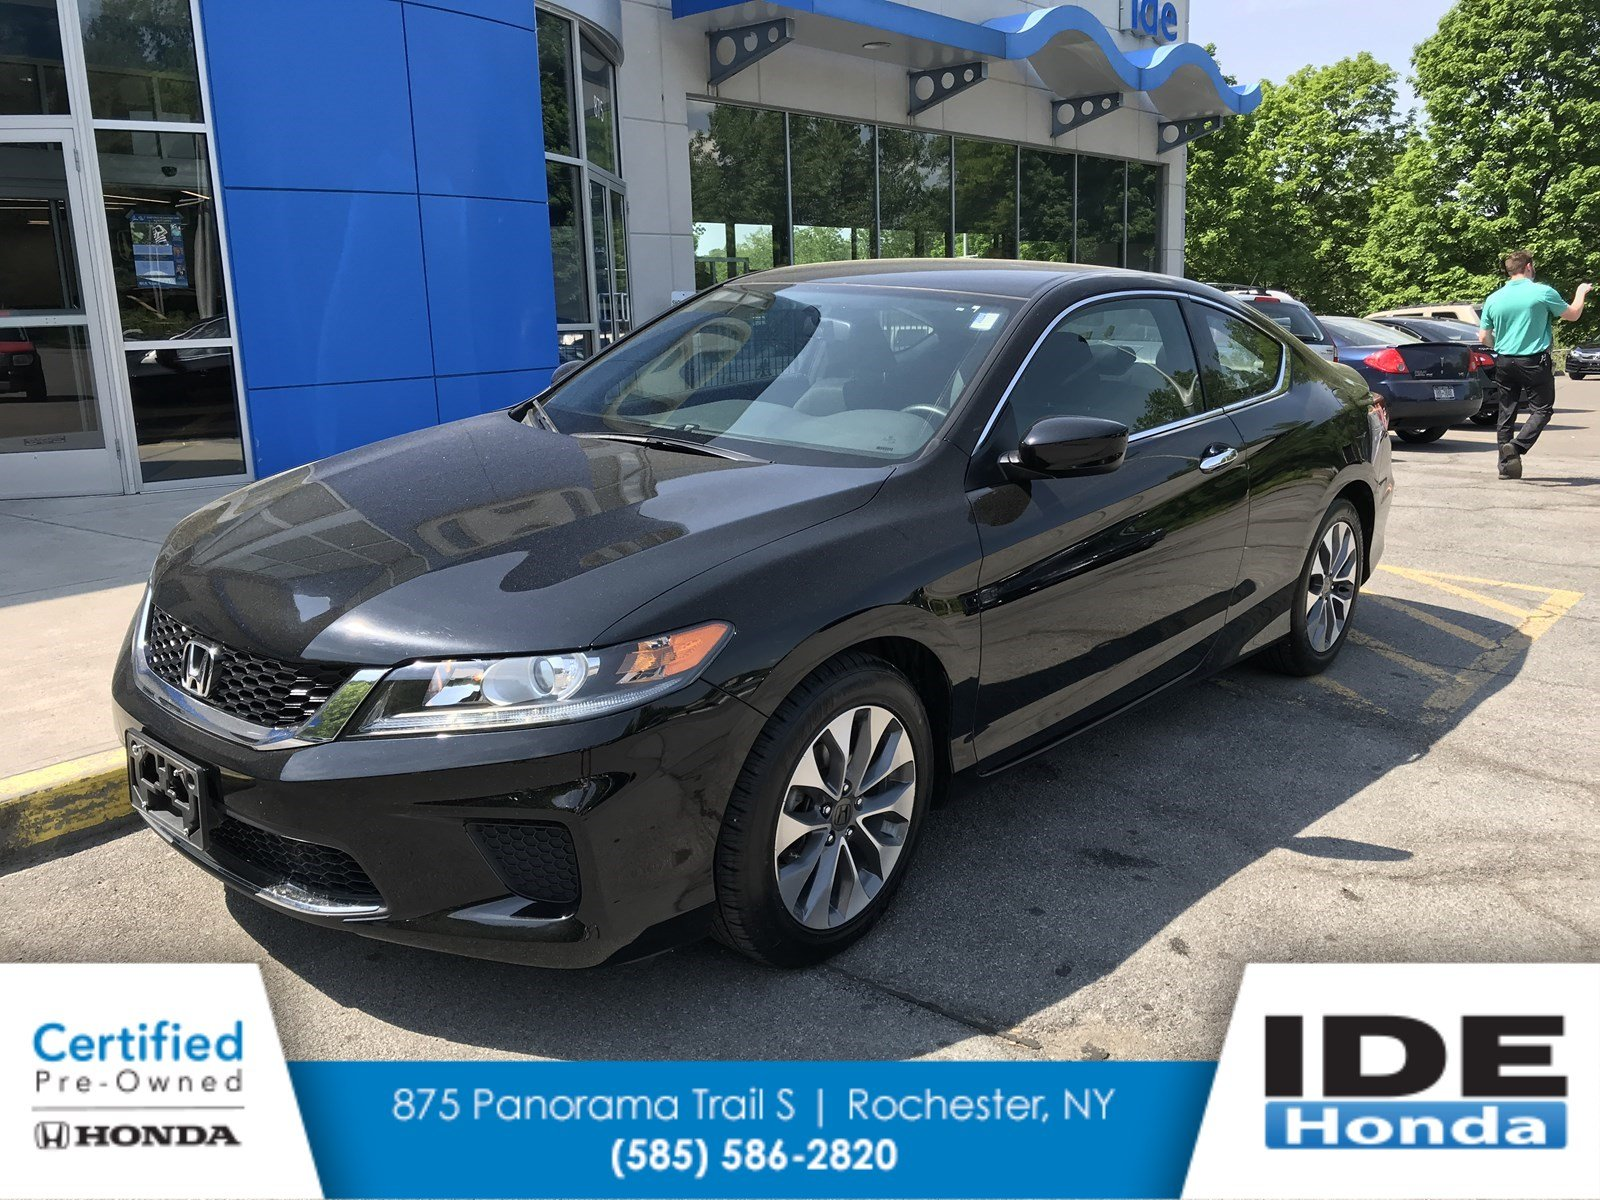 Certified Pre Owned 2015 Honda Accord Coupe LX S